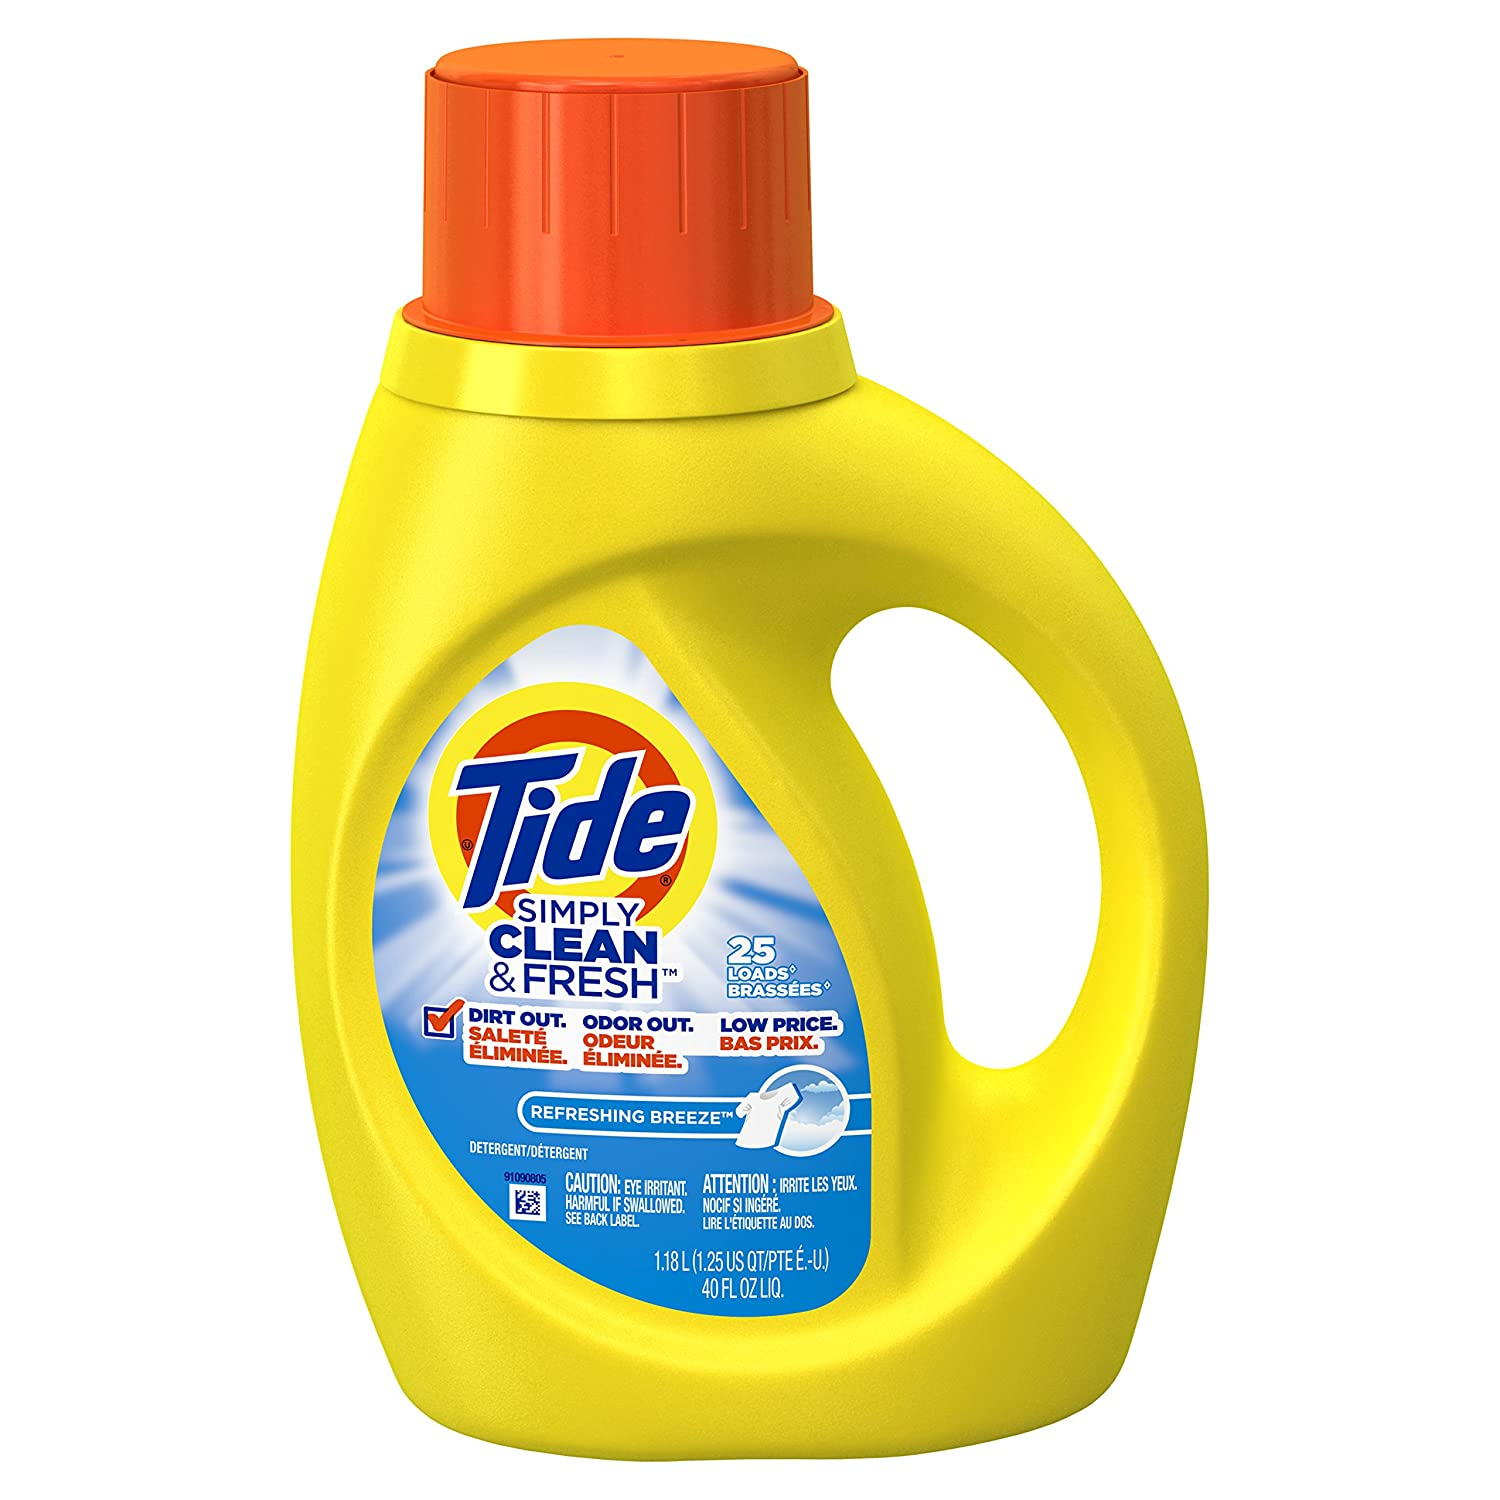 Tide Simply Clean & Fresh Liquid Laundry Detergent Refreshing Breeze, 40.0 oz.(1.18L)